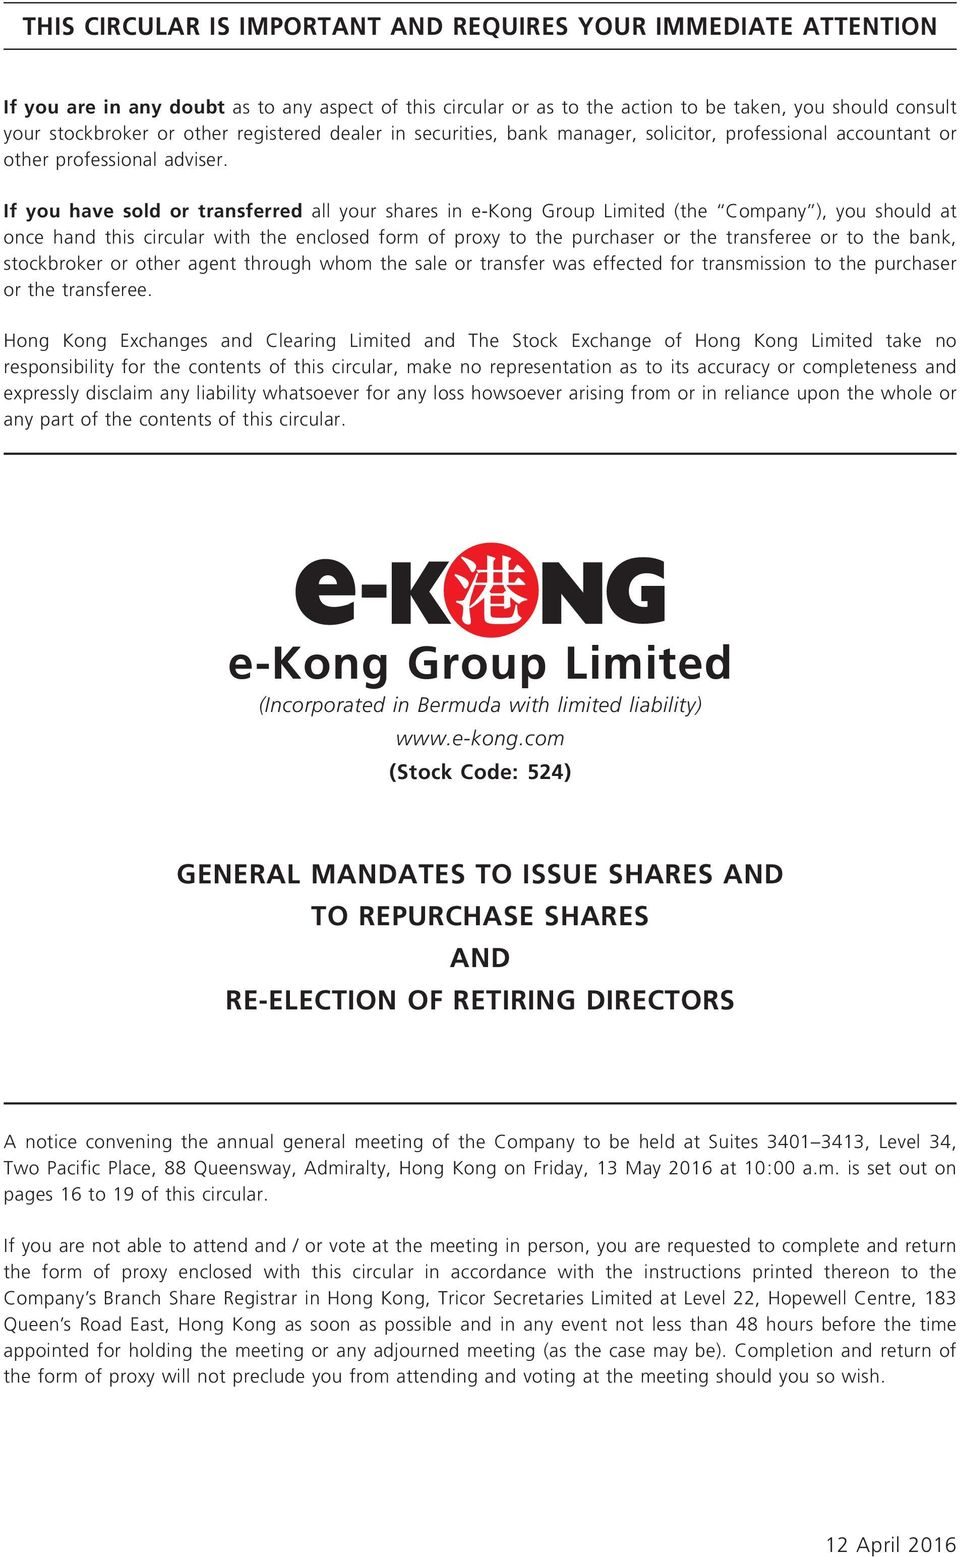 If you have sold or transferred all your shares in e-kong Group Limited (the Company ), you should at once hand this circular with the enclosed form of proxy to the purchaser or the transferee or to